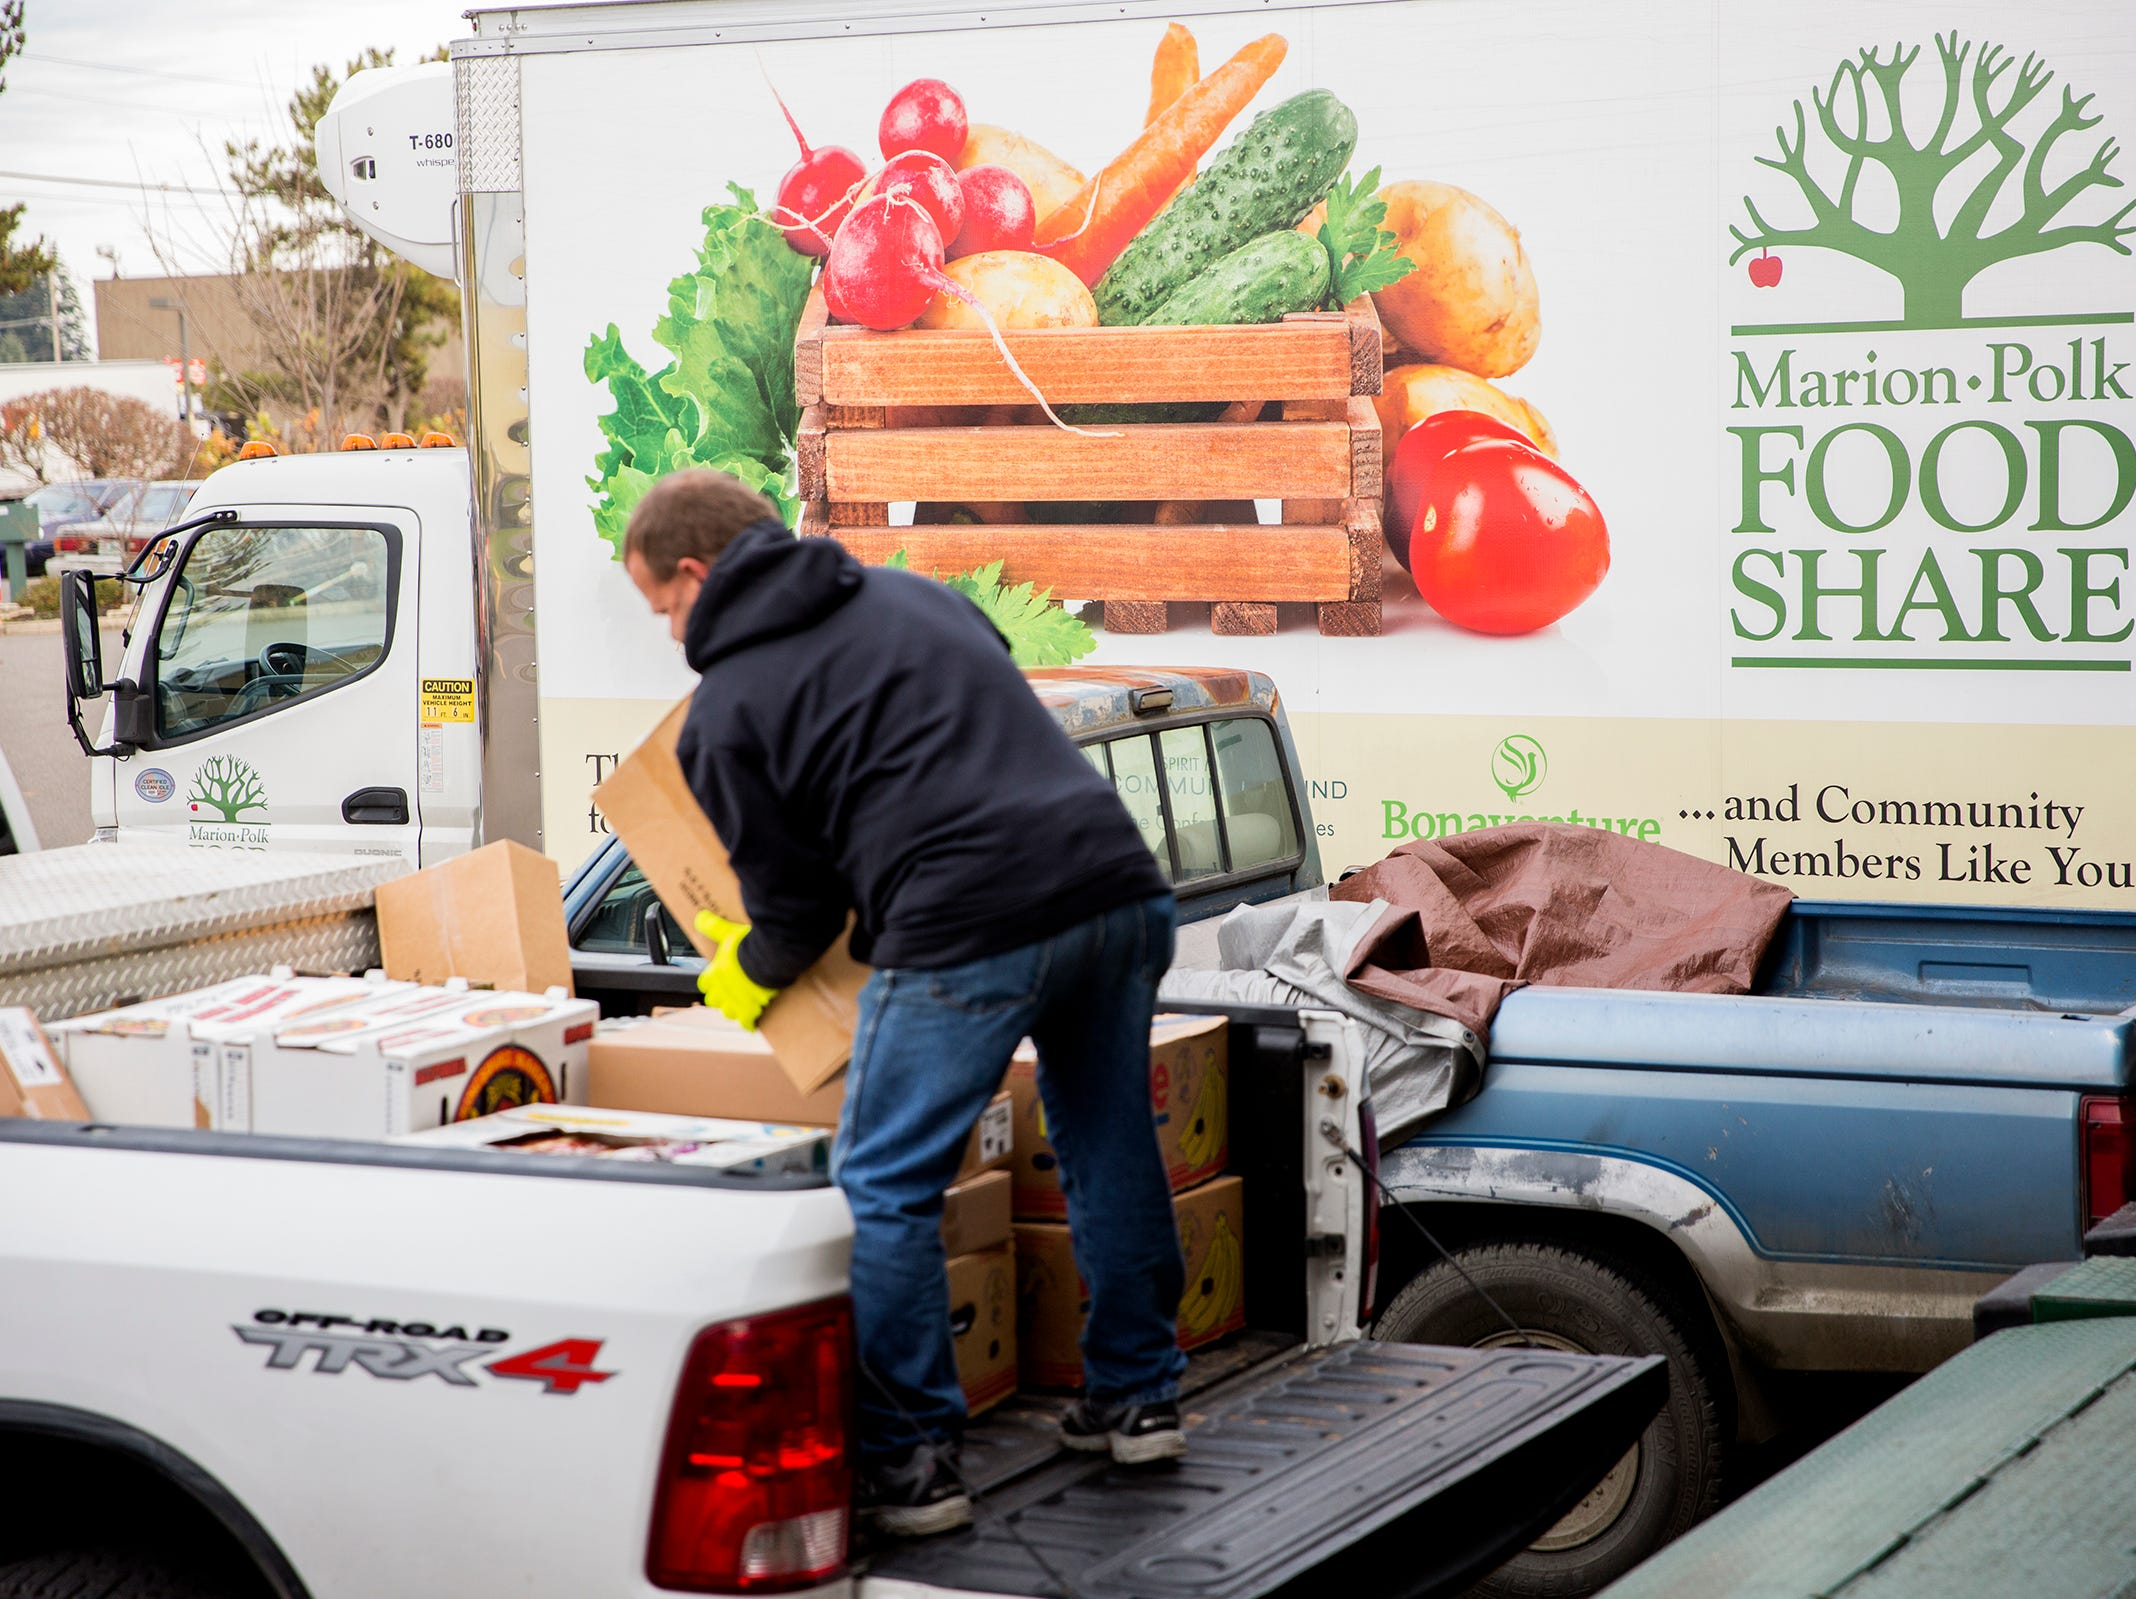 Marion-Polk Food Share, shown on Friday, Dec. 7, 2018, serves more than 40,000 people each month.